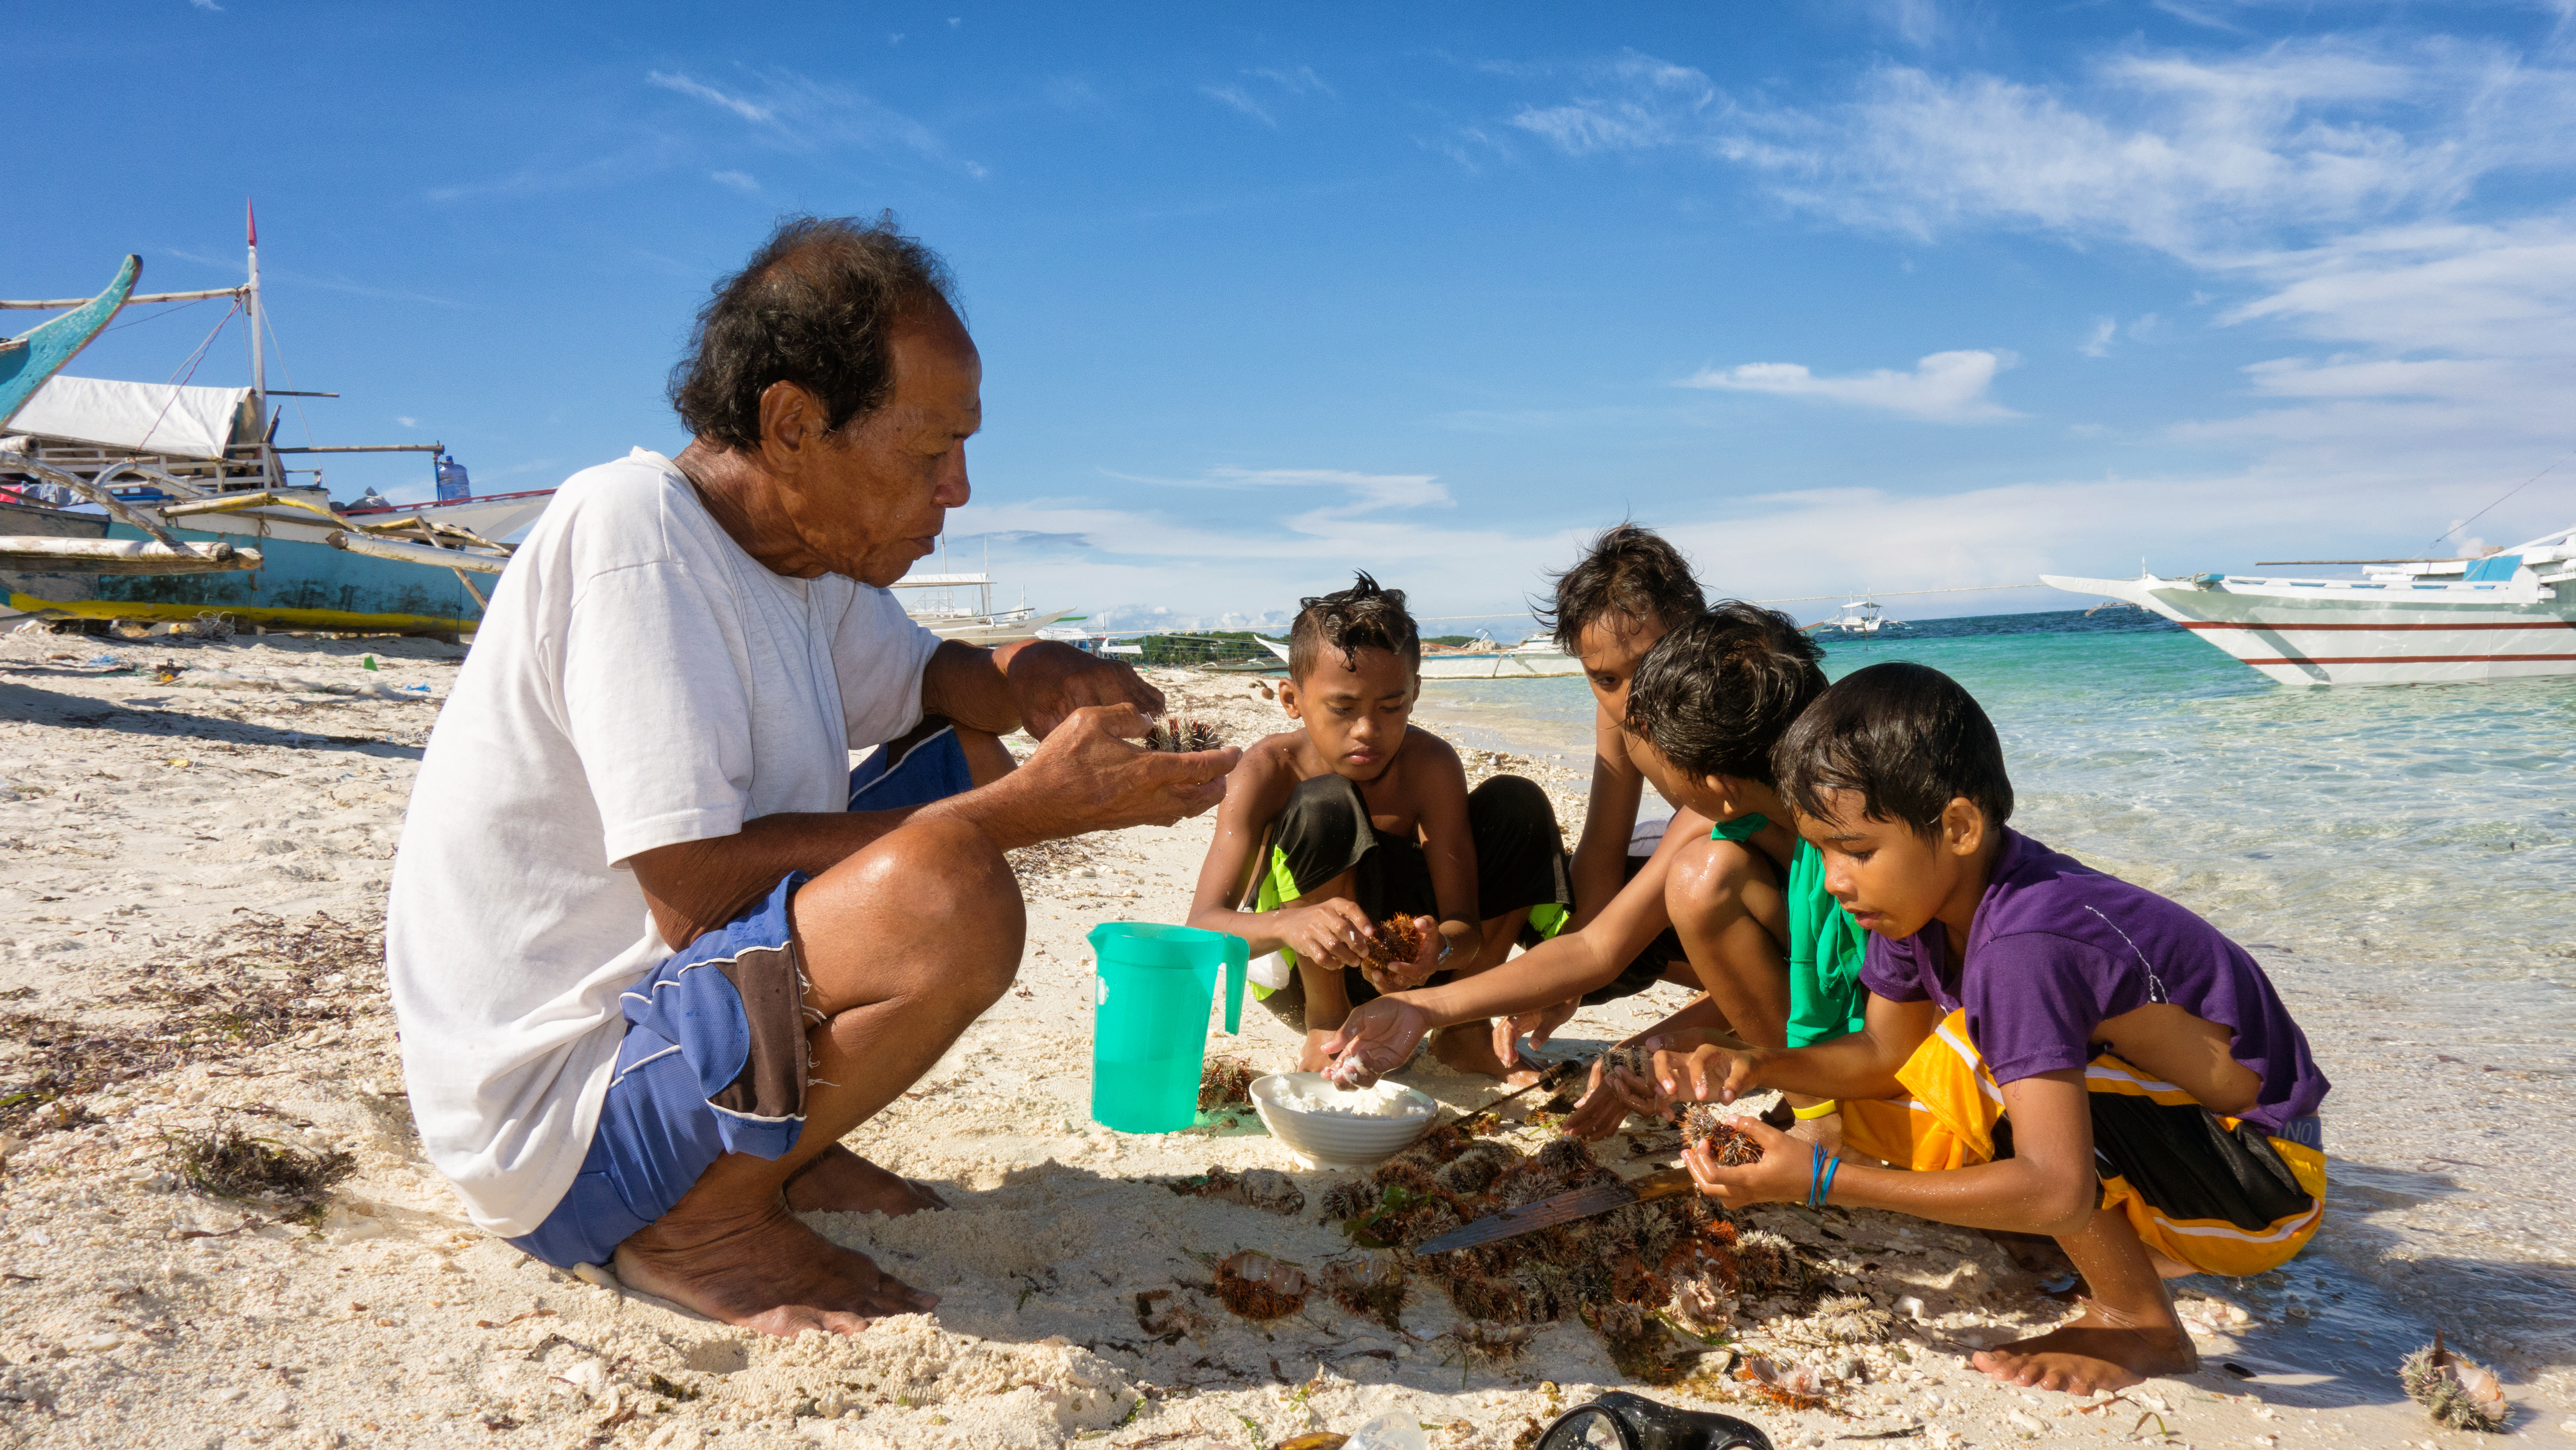 A man and four boys shucking oysters on a shoreline in the Philippines